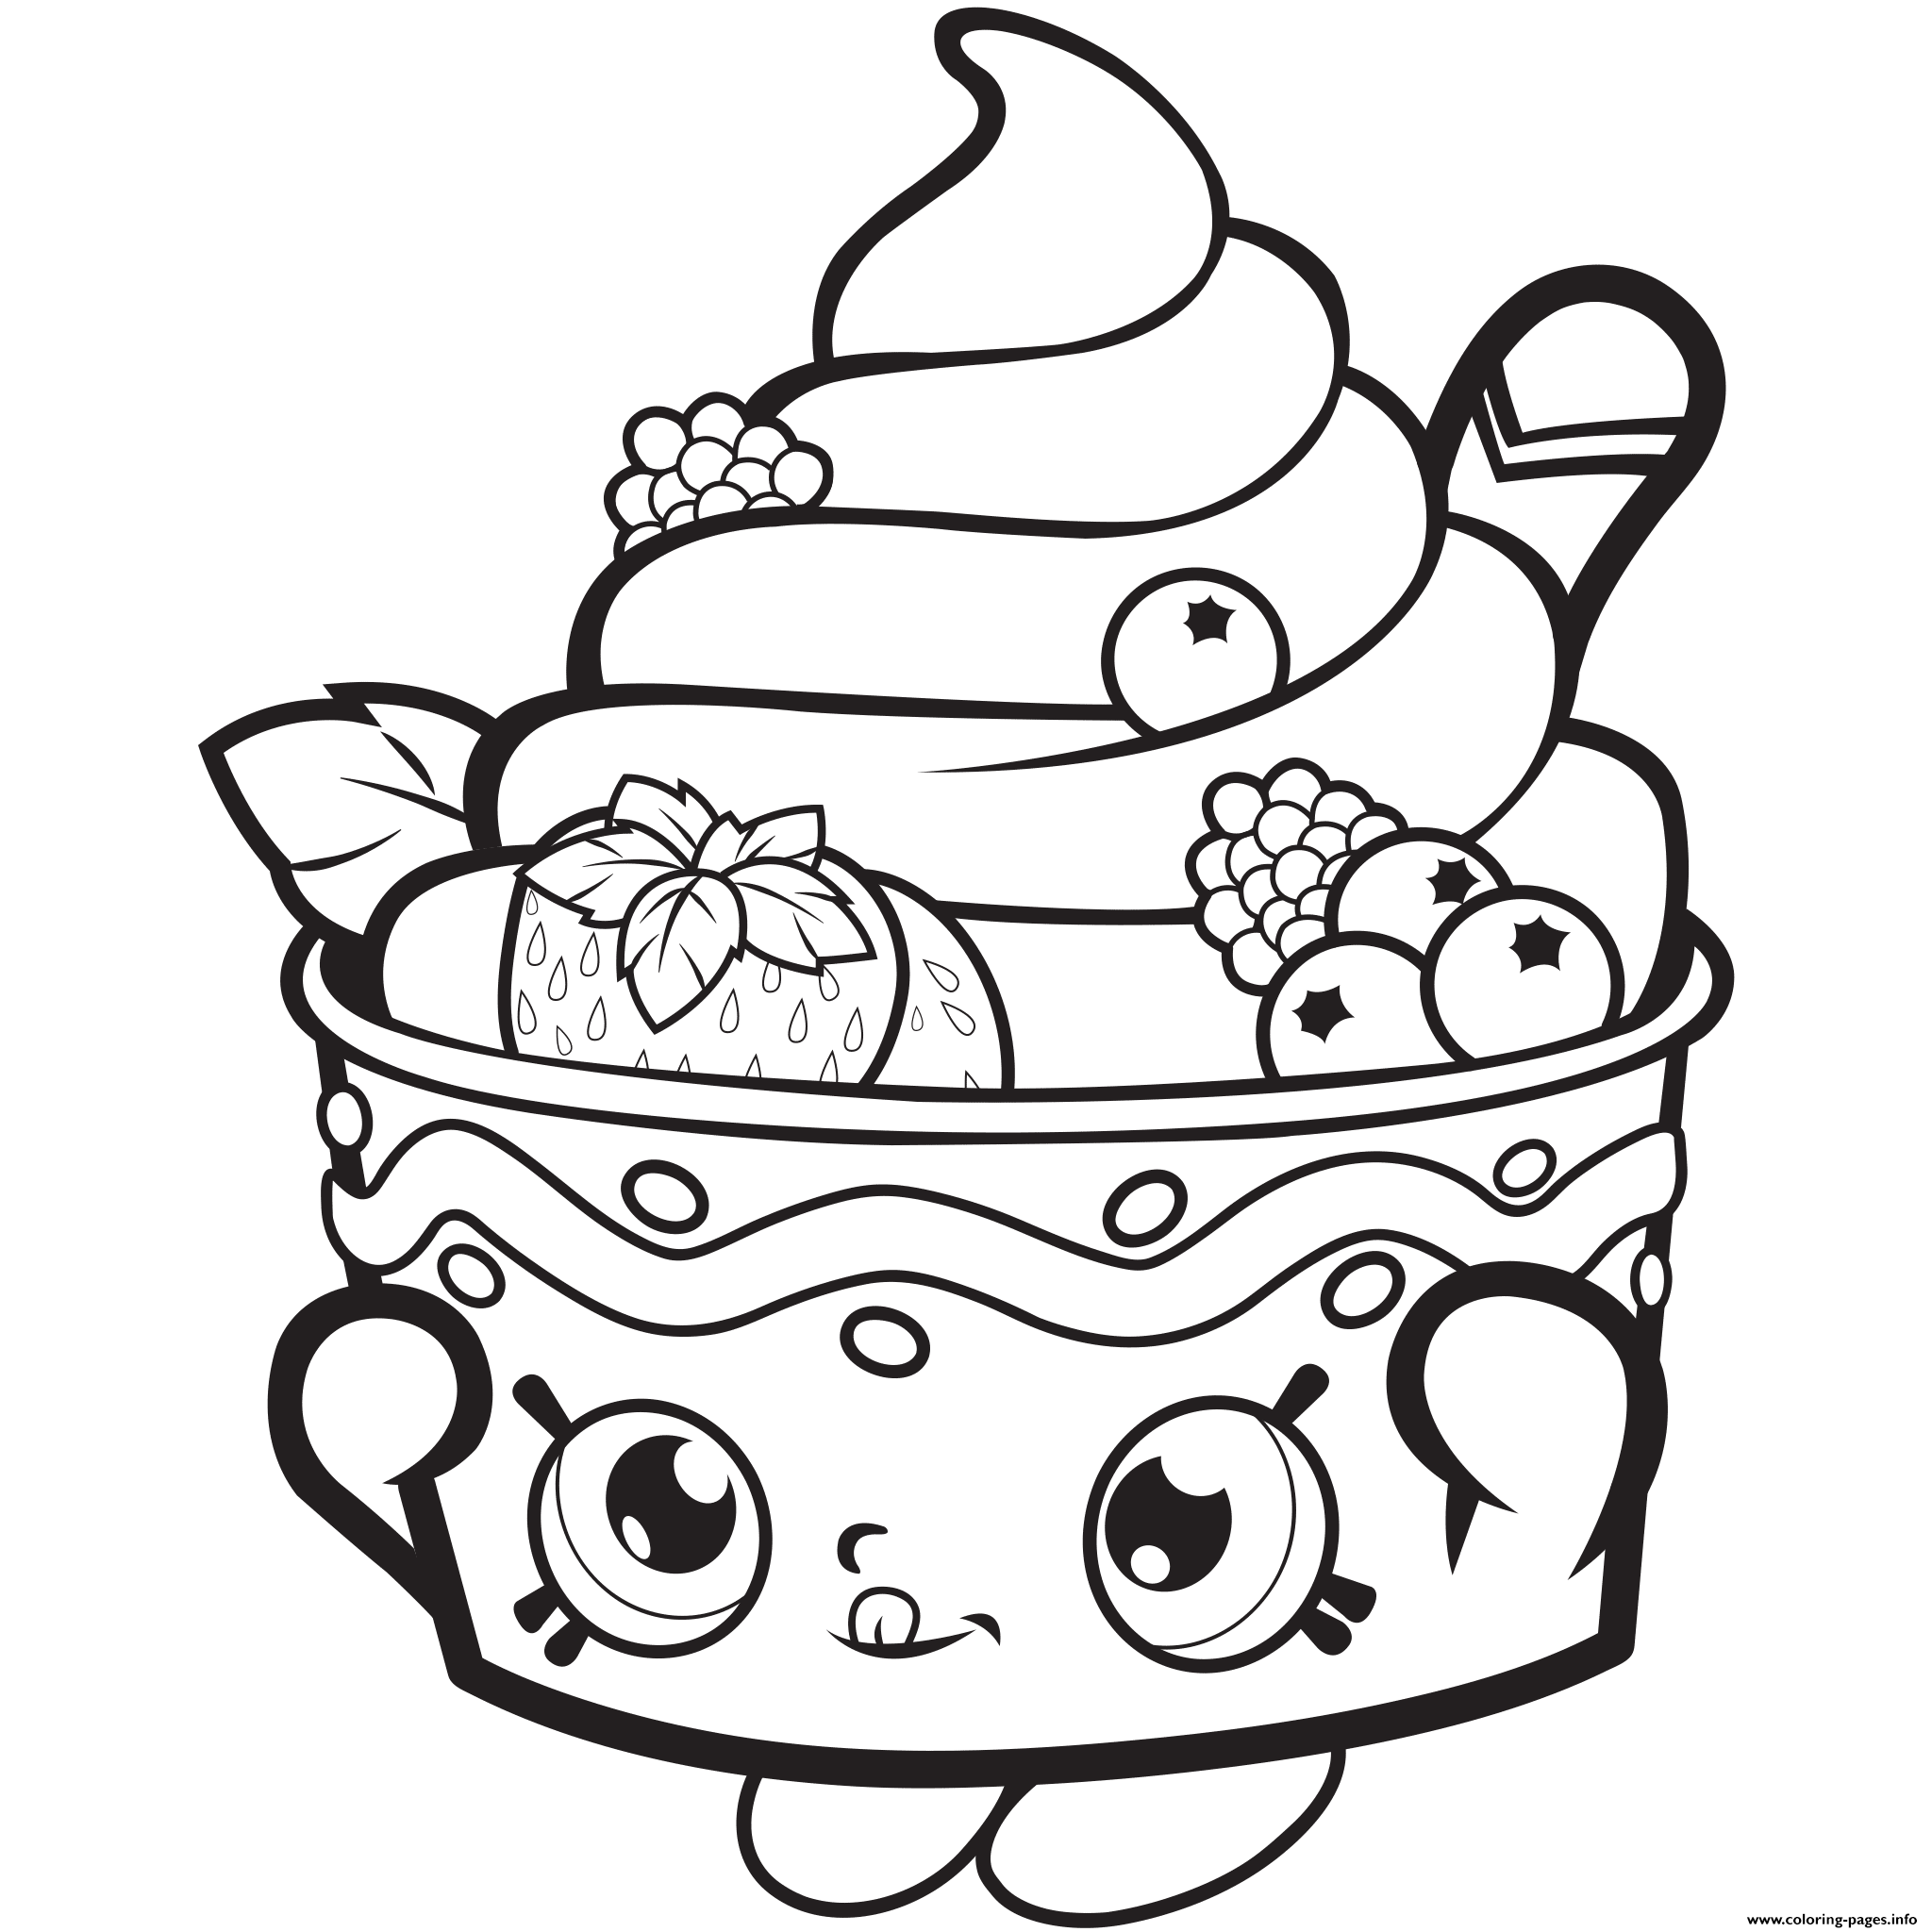 Coloring book printable frozen - Frozen Yo Chi Printable Shopkins Season 1 Season One Coloring Pages Printable